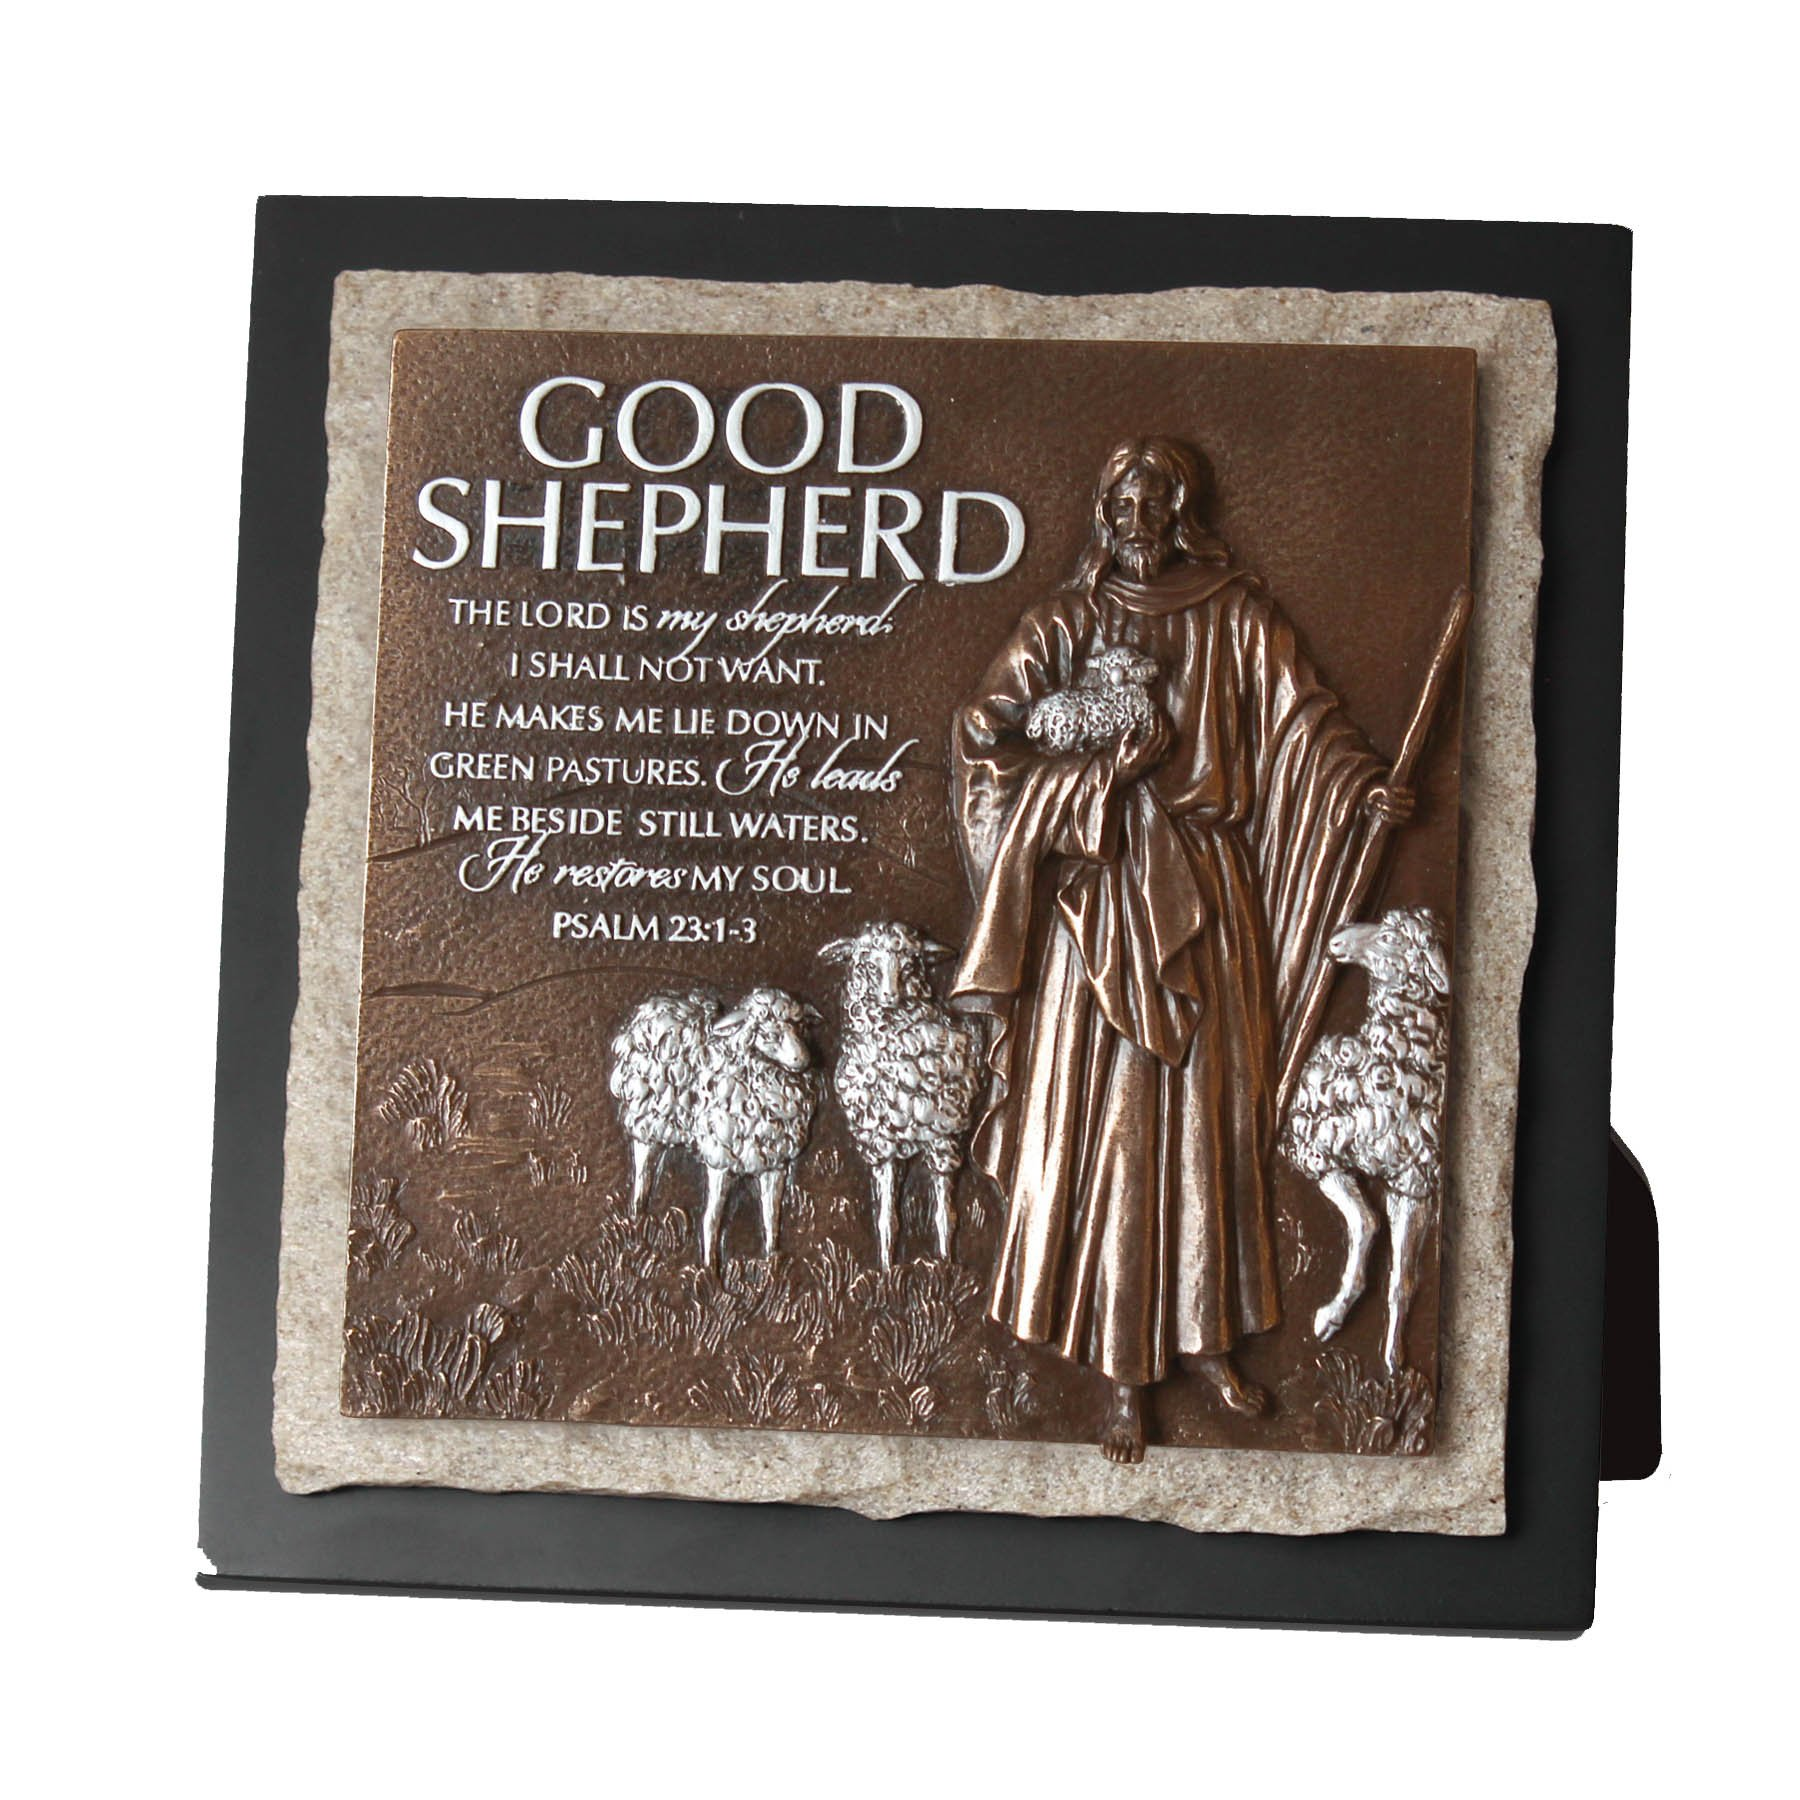 Lighthouse Christian Products Cast Stone Moments of Faith Good Shepherd Small Sculpture Plaque, 7 1/2 x 7 1/2''